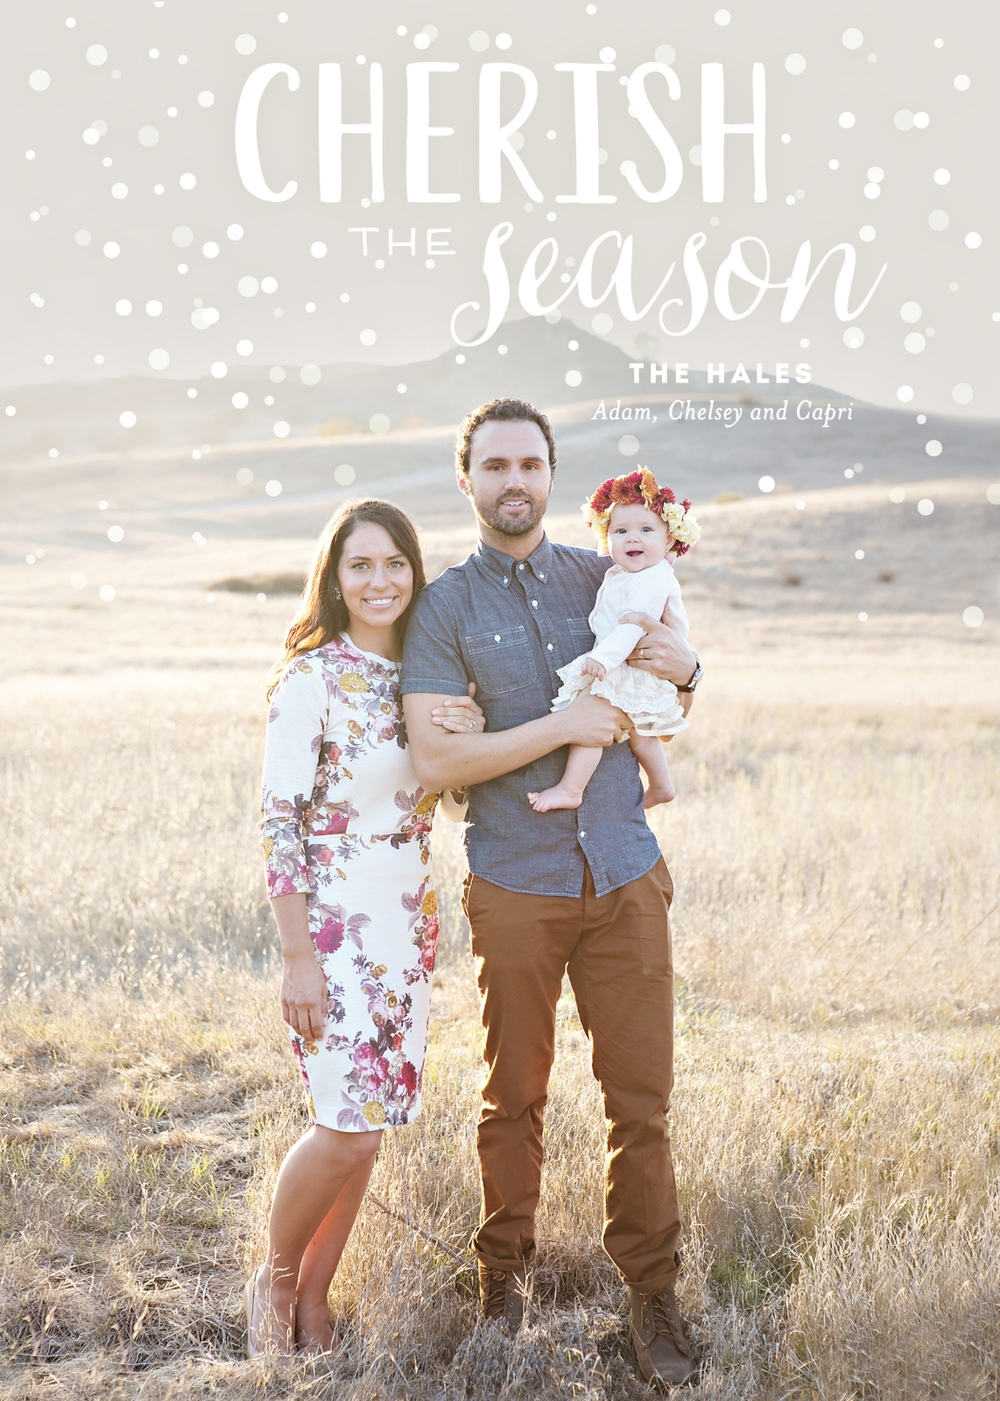 Hale_Christmas card_2013.jpg